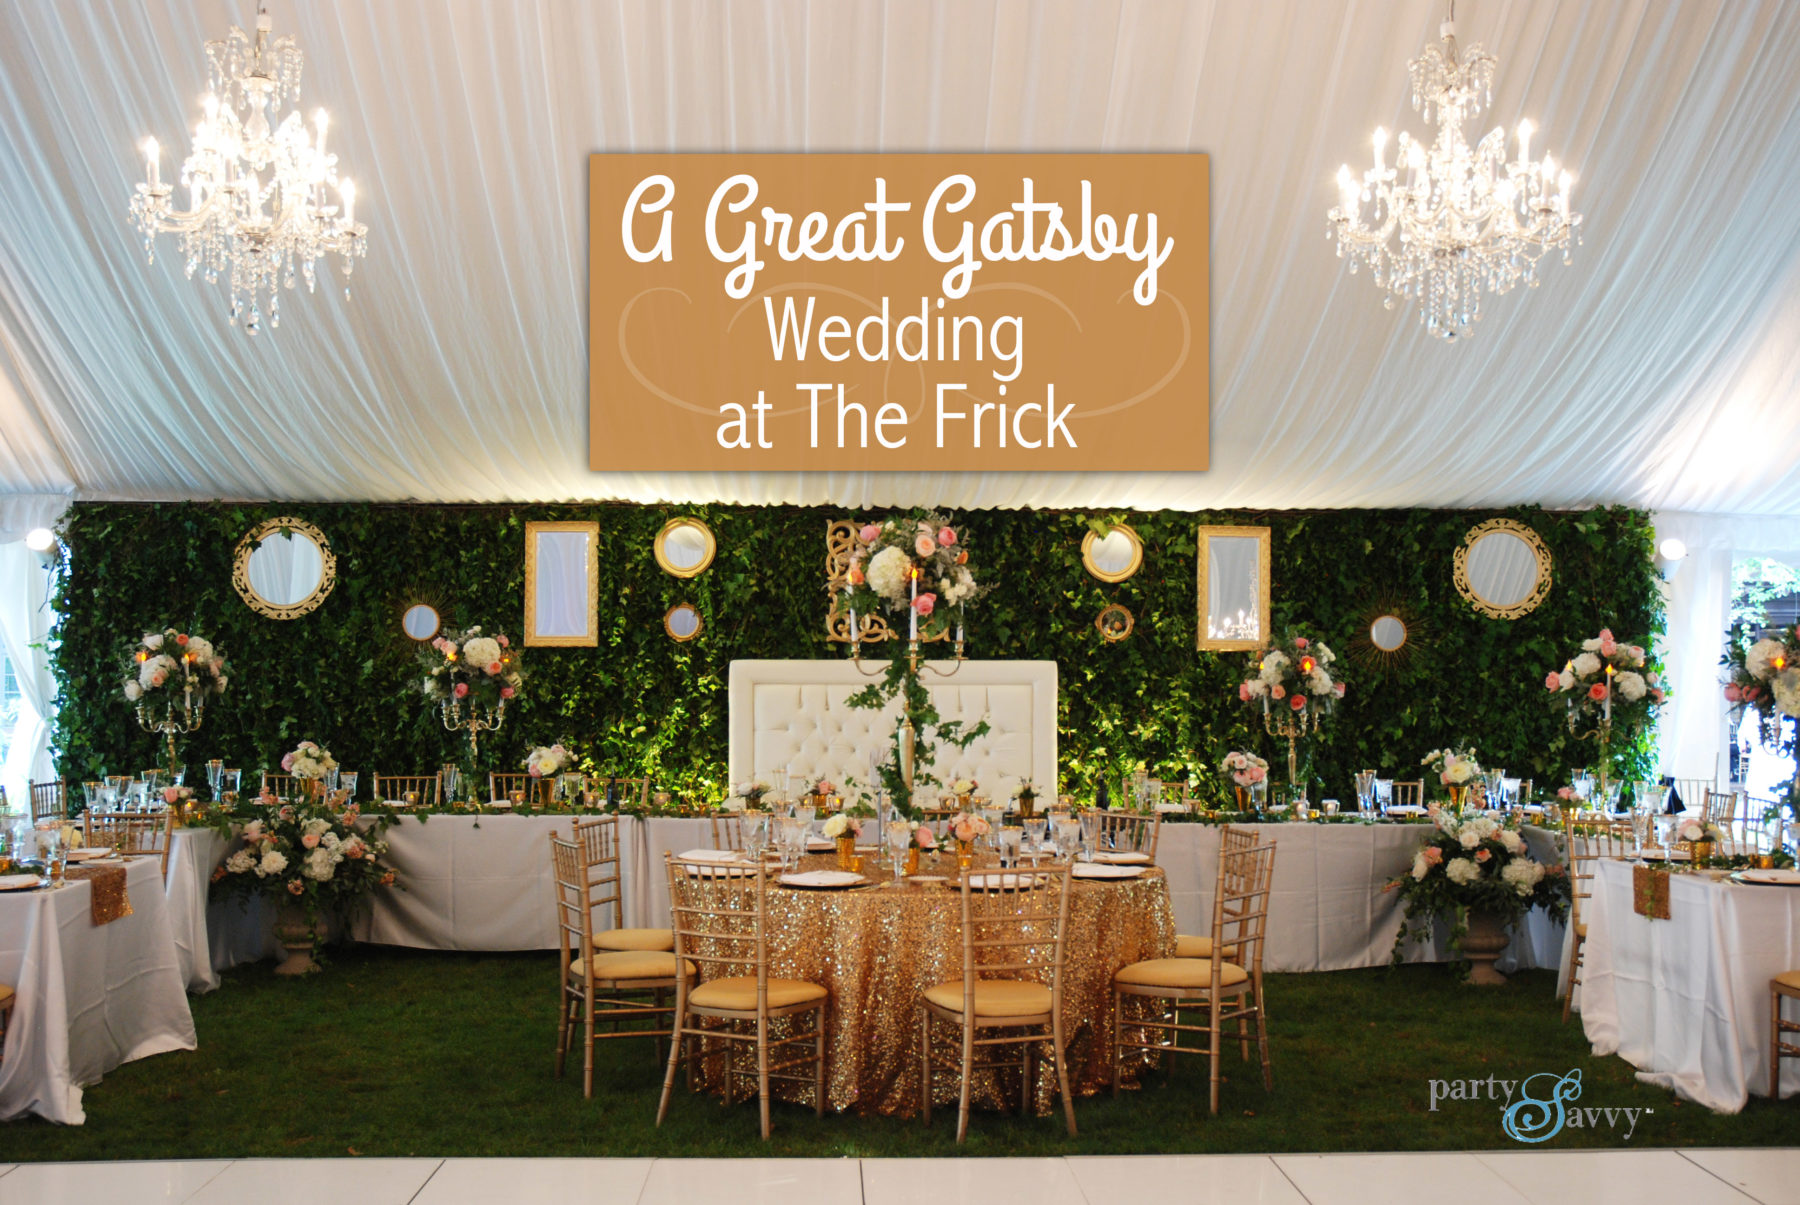 A Great Gatsby Wedding at The Frick